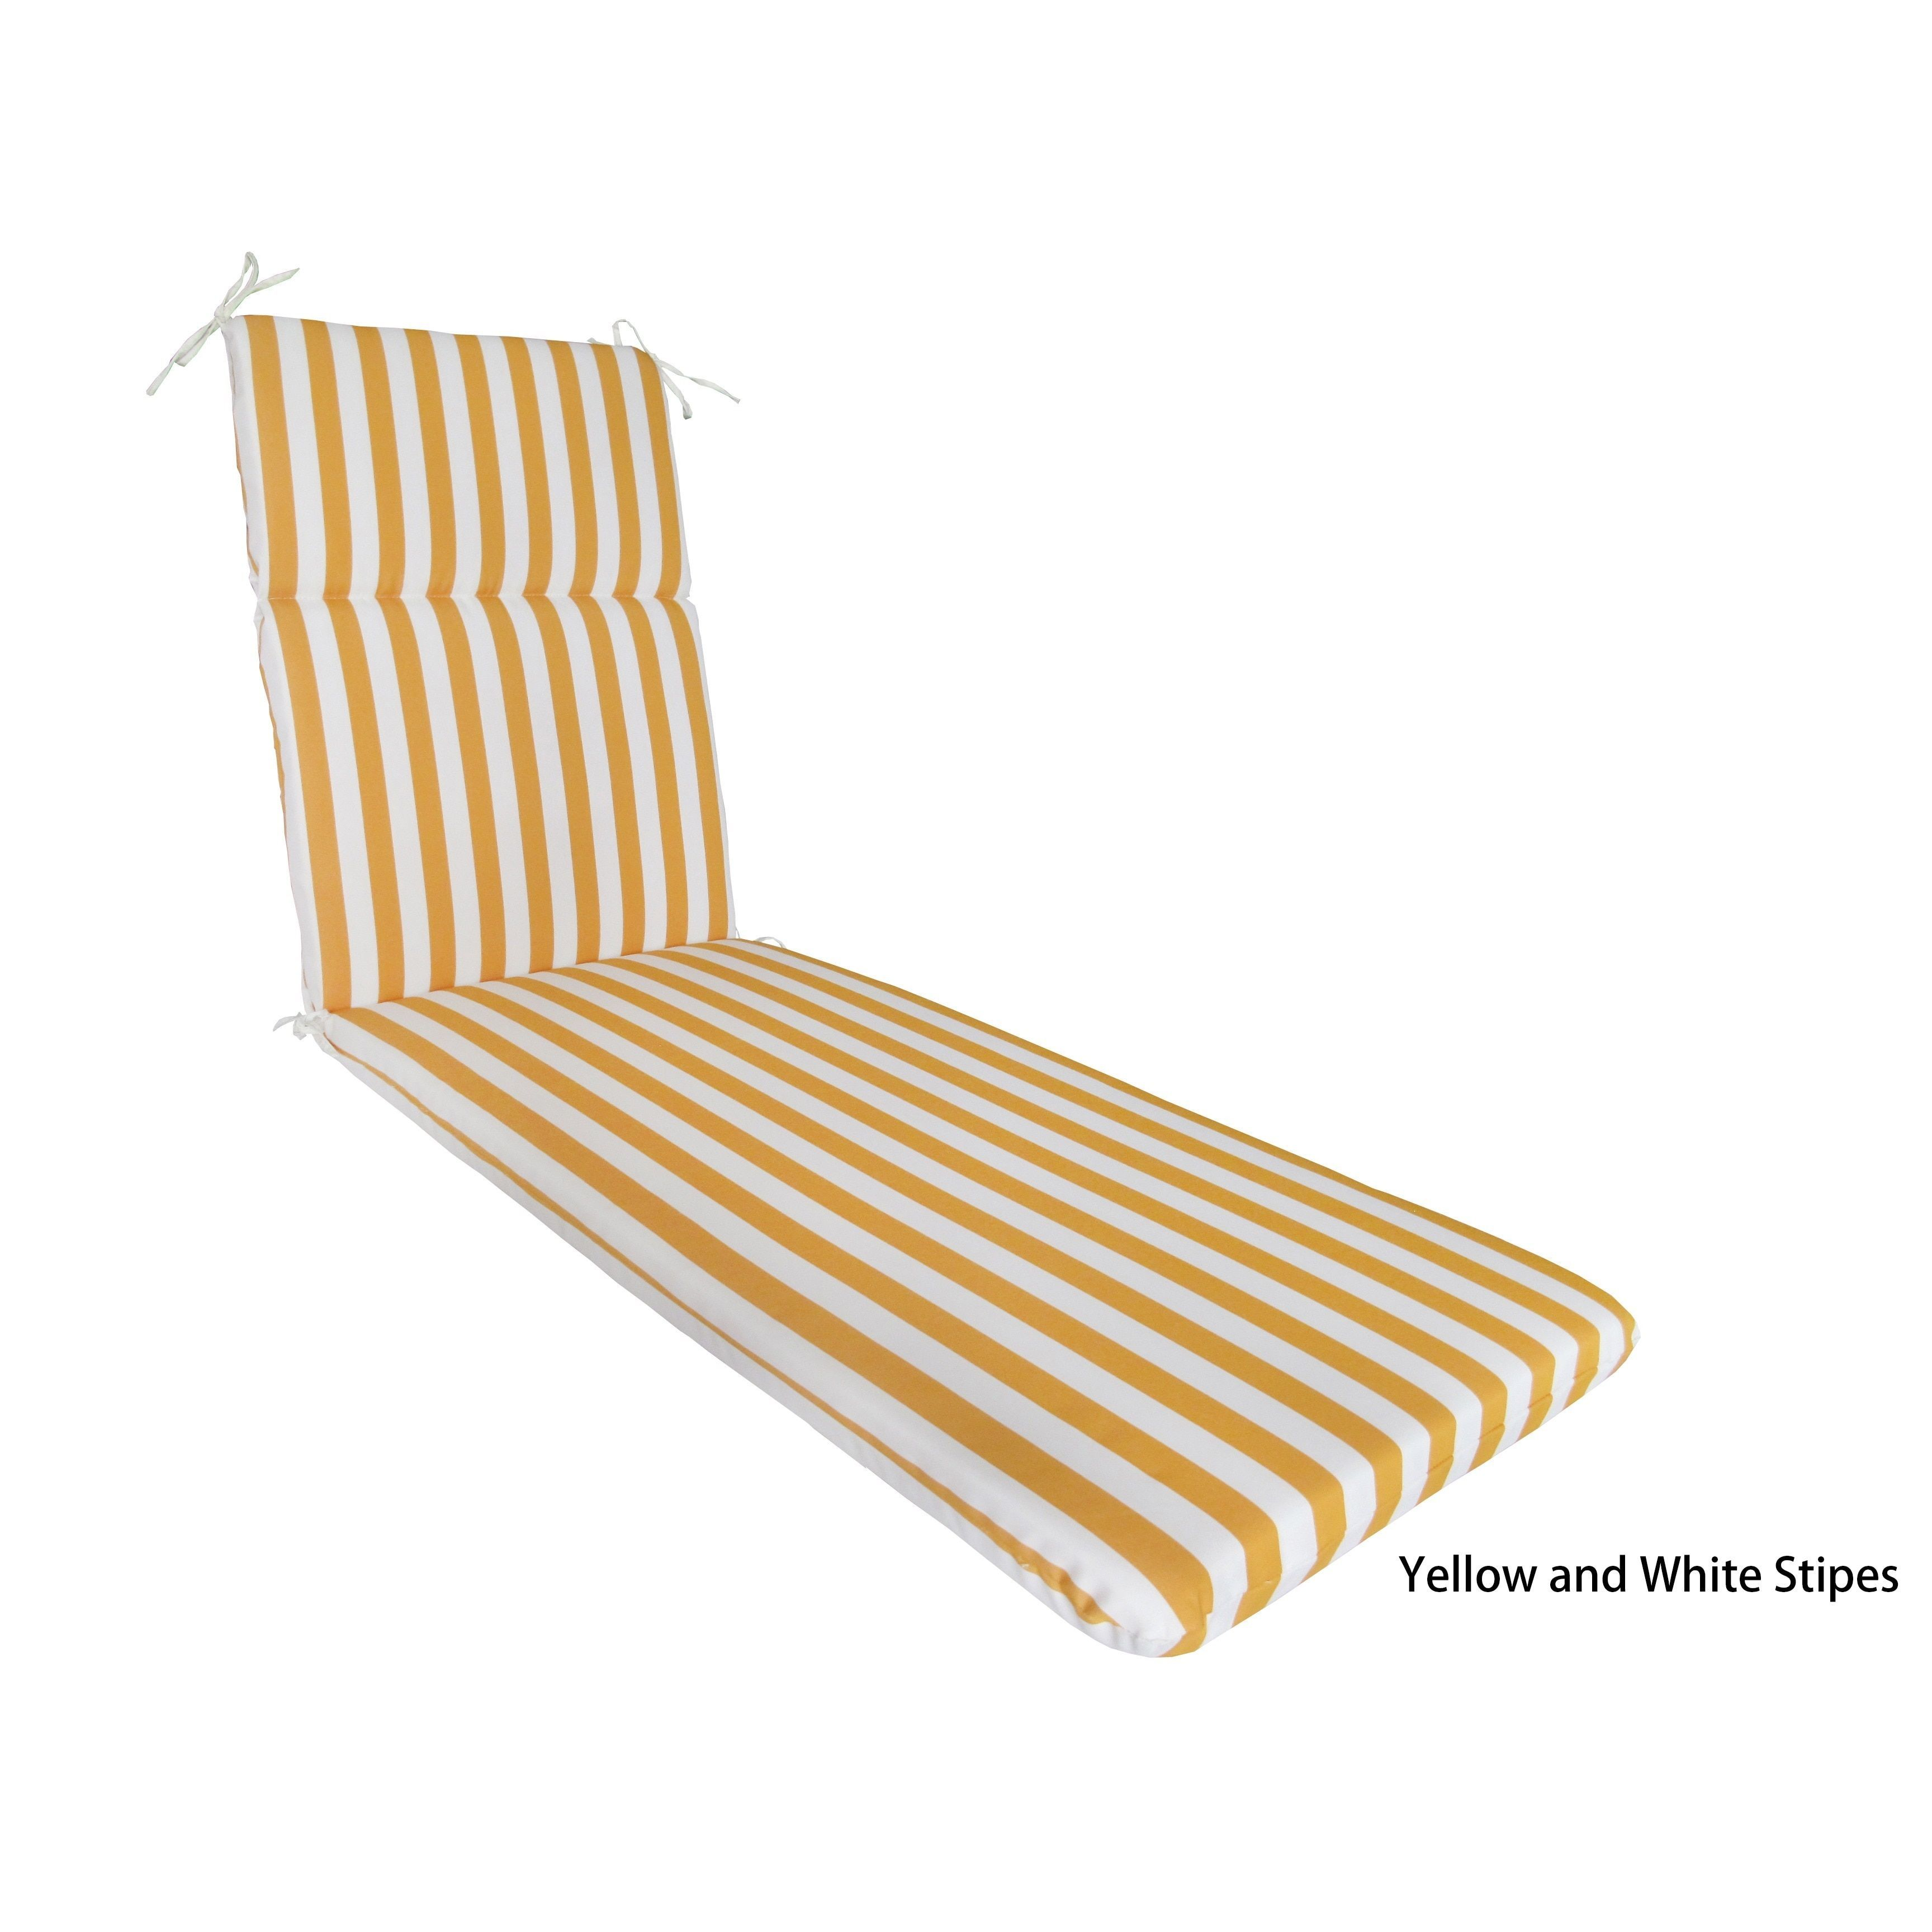 White Lounge Chair Cushions Woven Bistro Chairs Corvus Naples Outdoor Cushion Yellow And Stripes Polyester